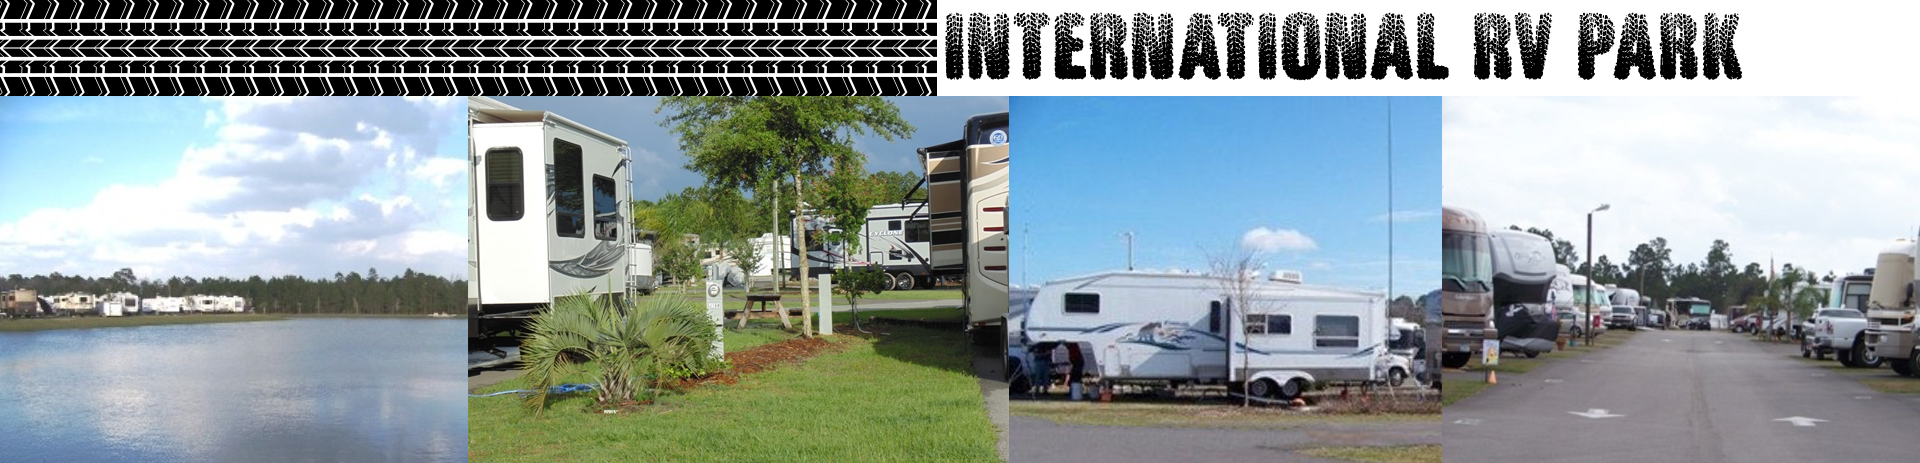 international rv park